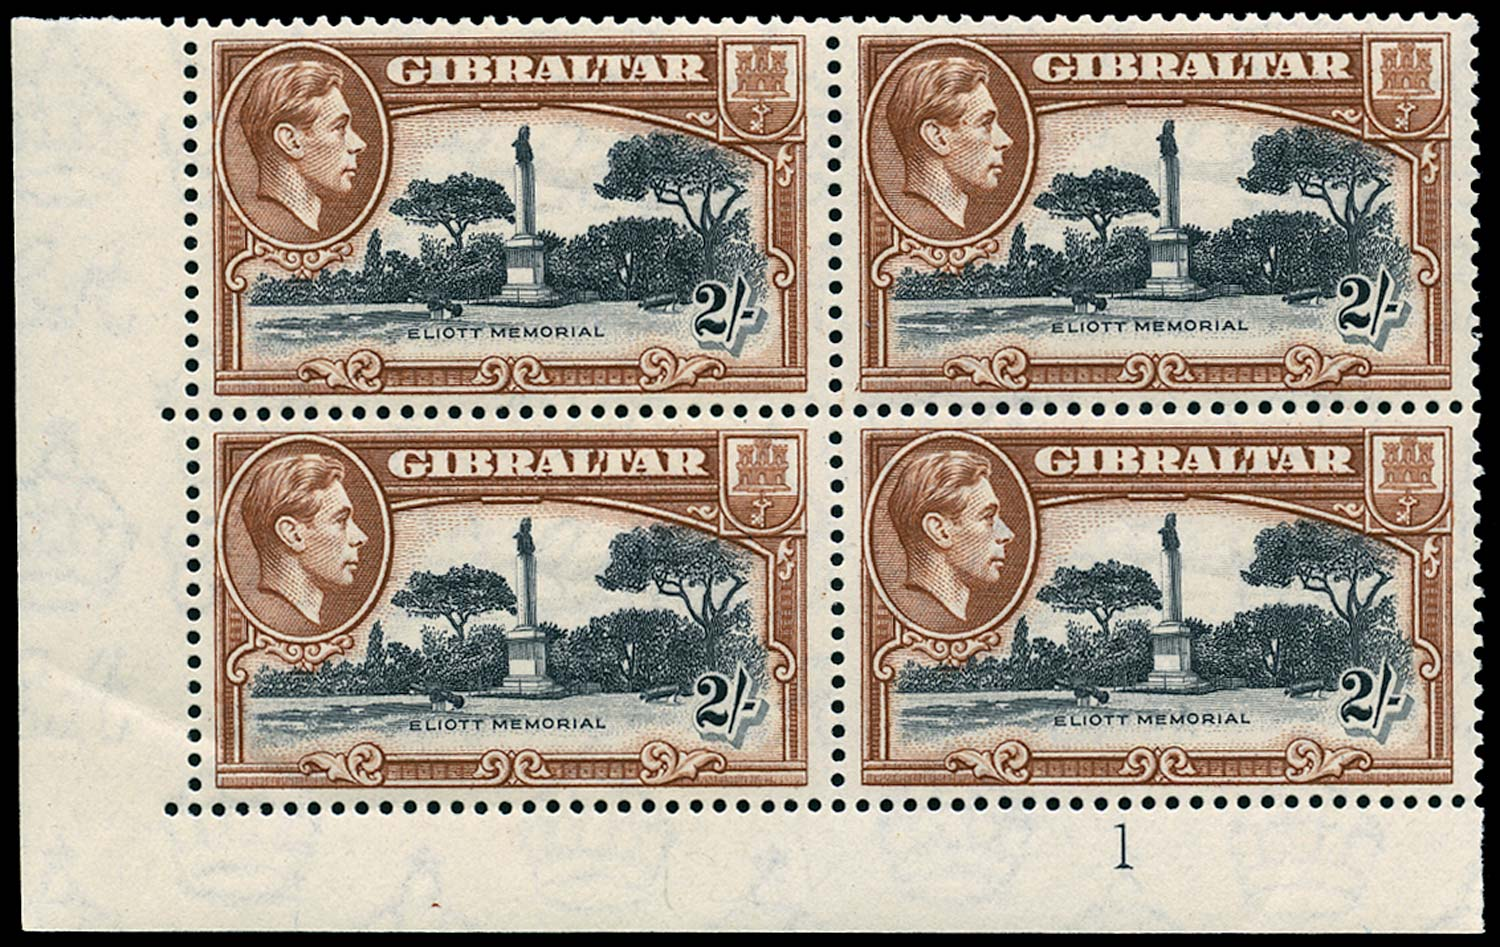 GIBRALTAR 1942  SG128b Mint 2s black and brown perf 13 unmounted